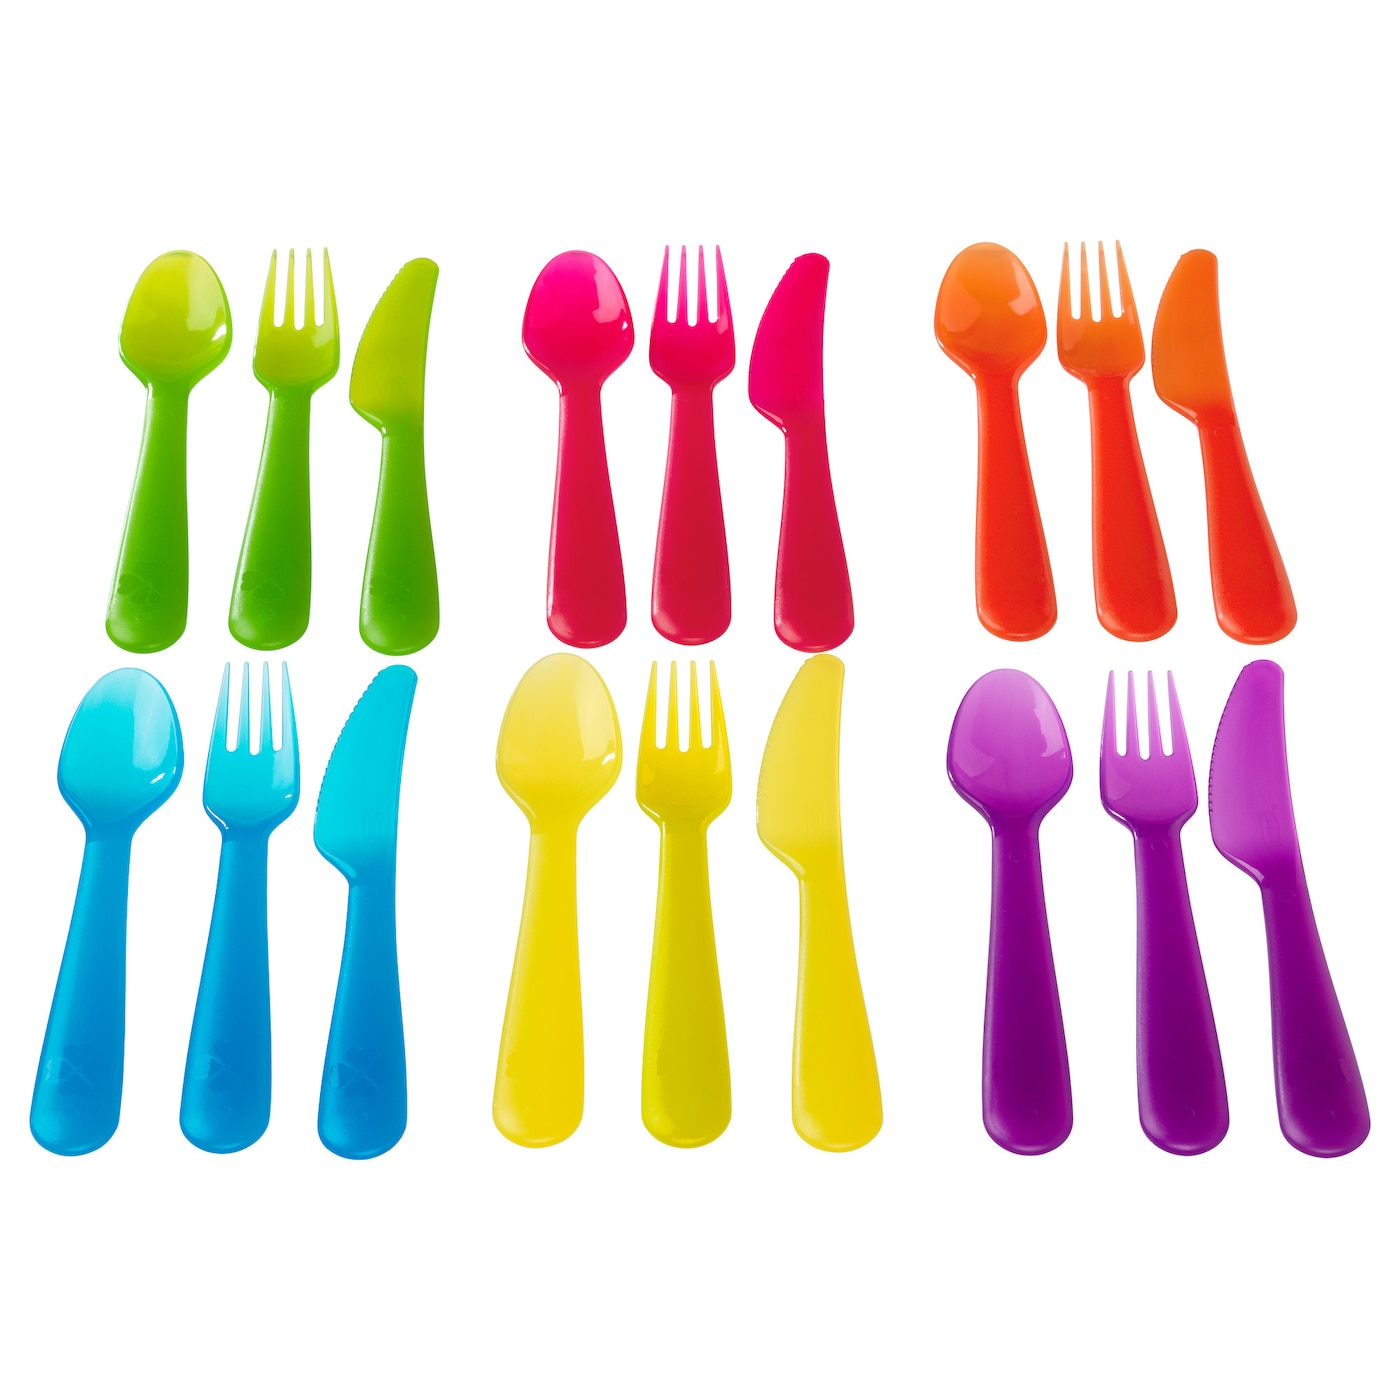 IKEA KALAS 18-piece cutlery set Easy for children to grip in their small hands.